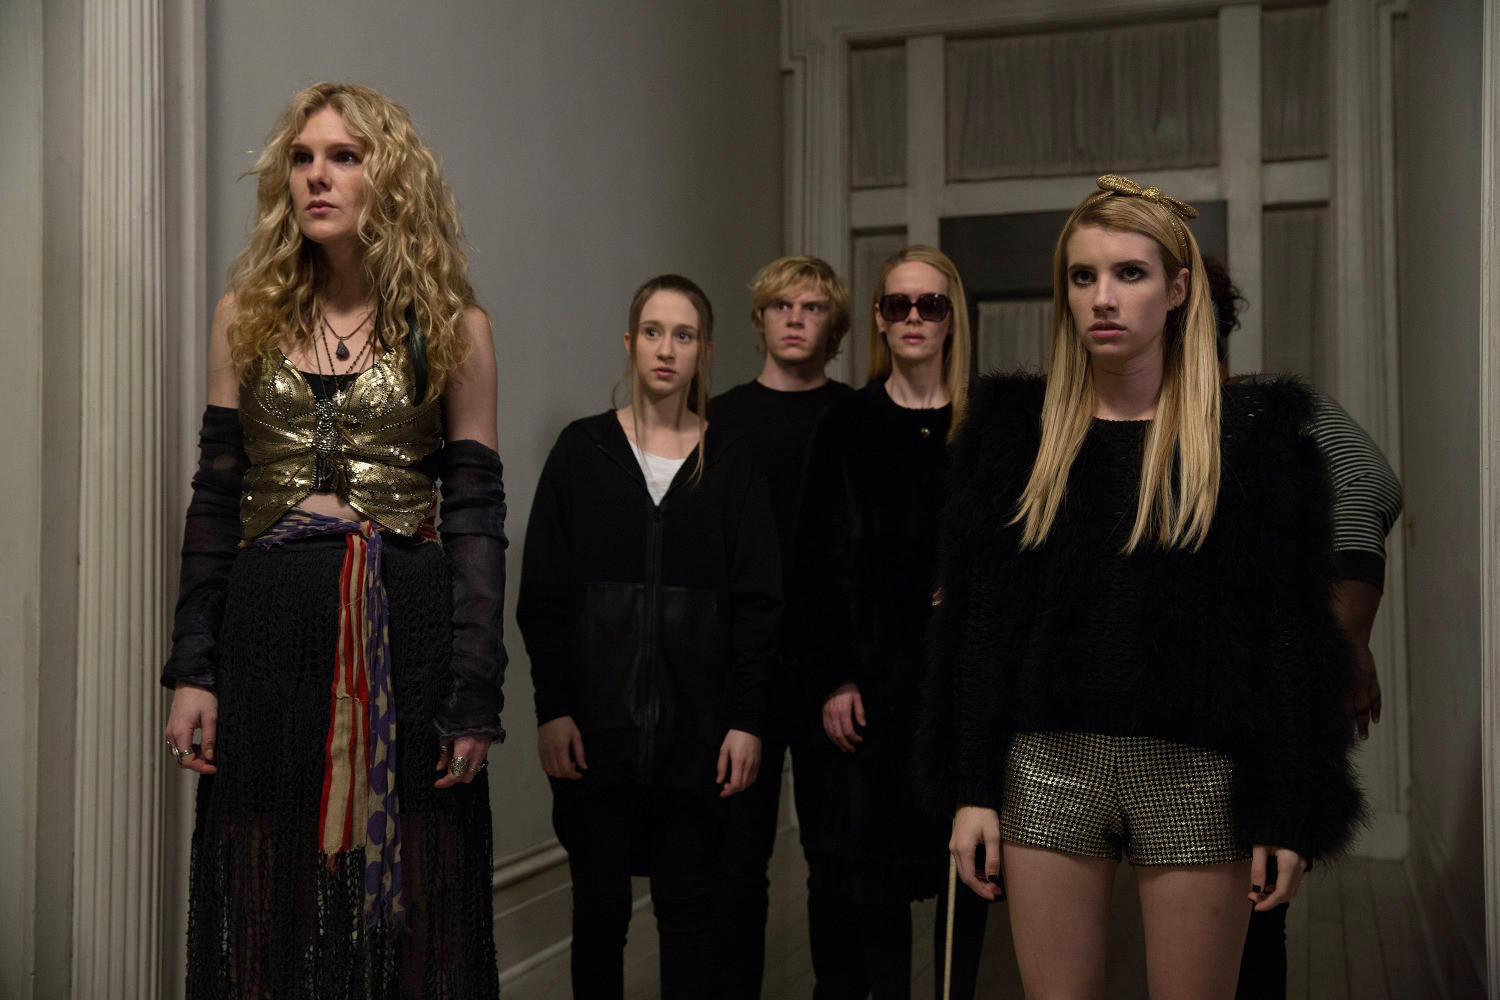 L-R: Lily Rabe as Misty Day, Taissa Farmiga as Zoe, Evan Peters as Kyle, Sarah Paulson as Cordelia, Emma Roberts as Madison.